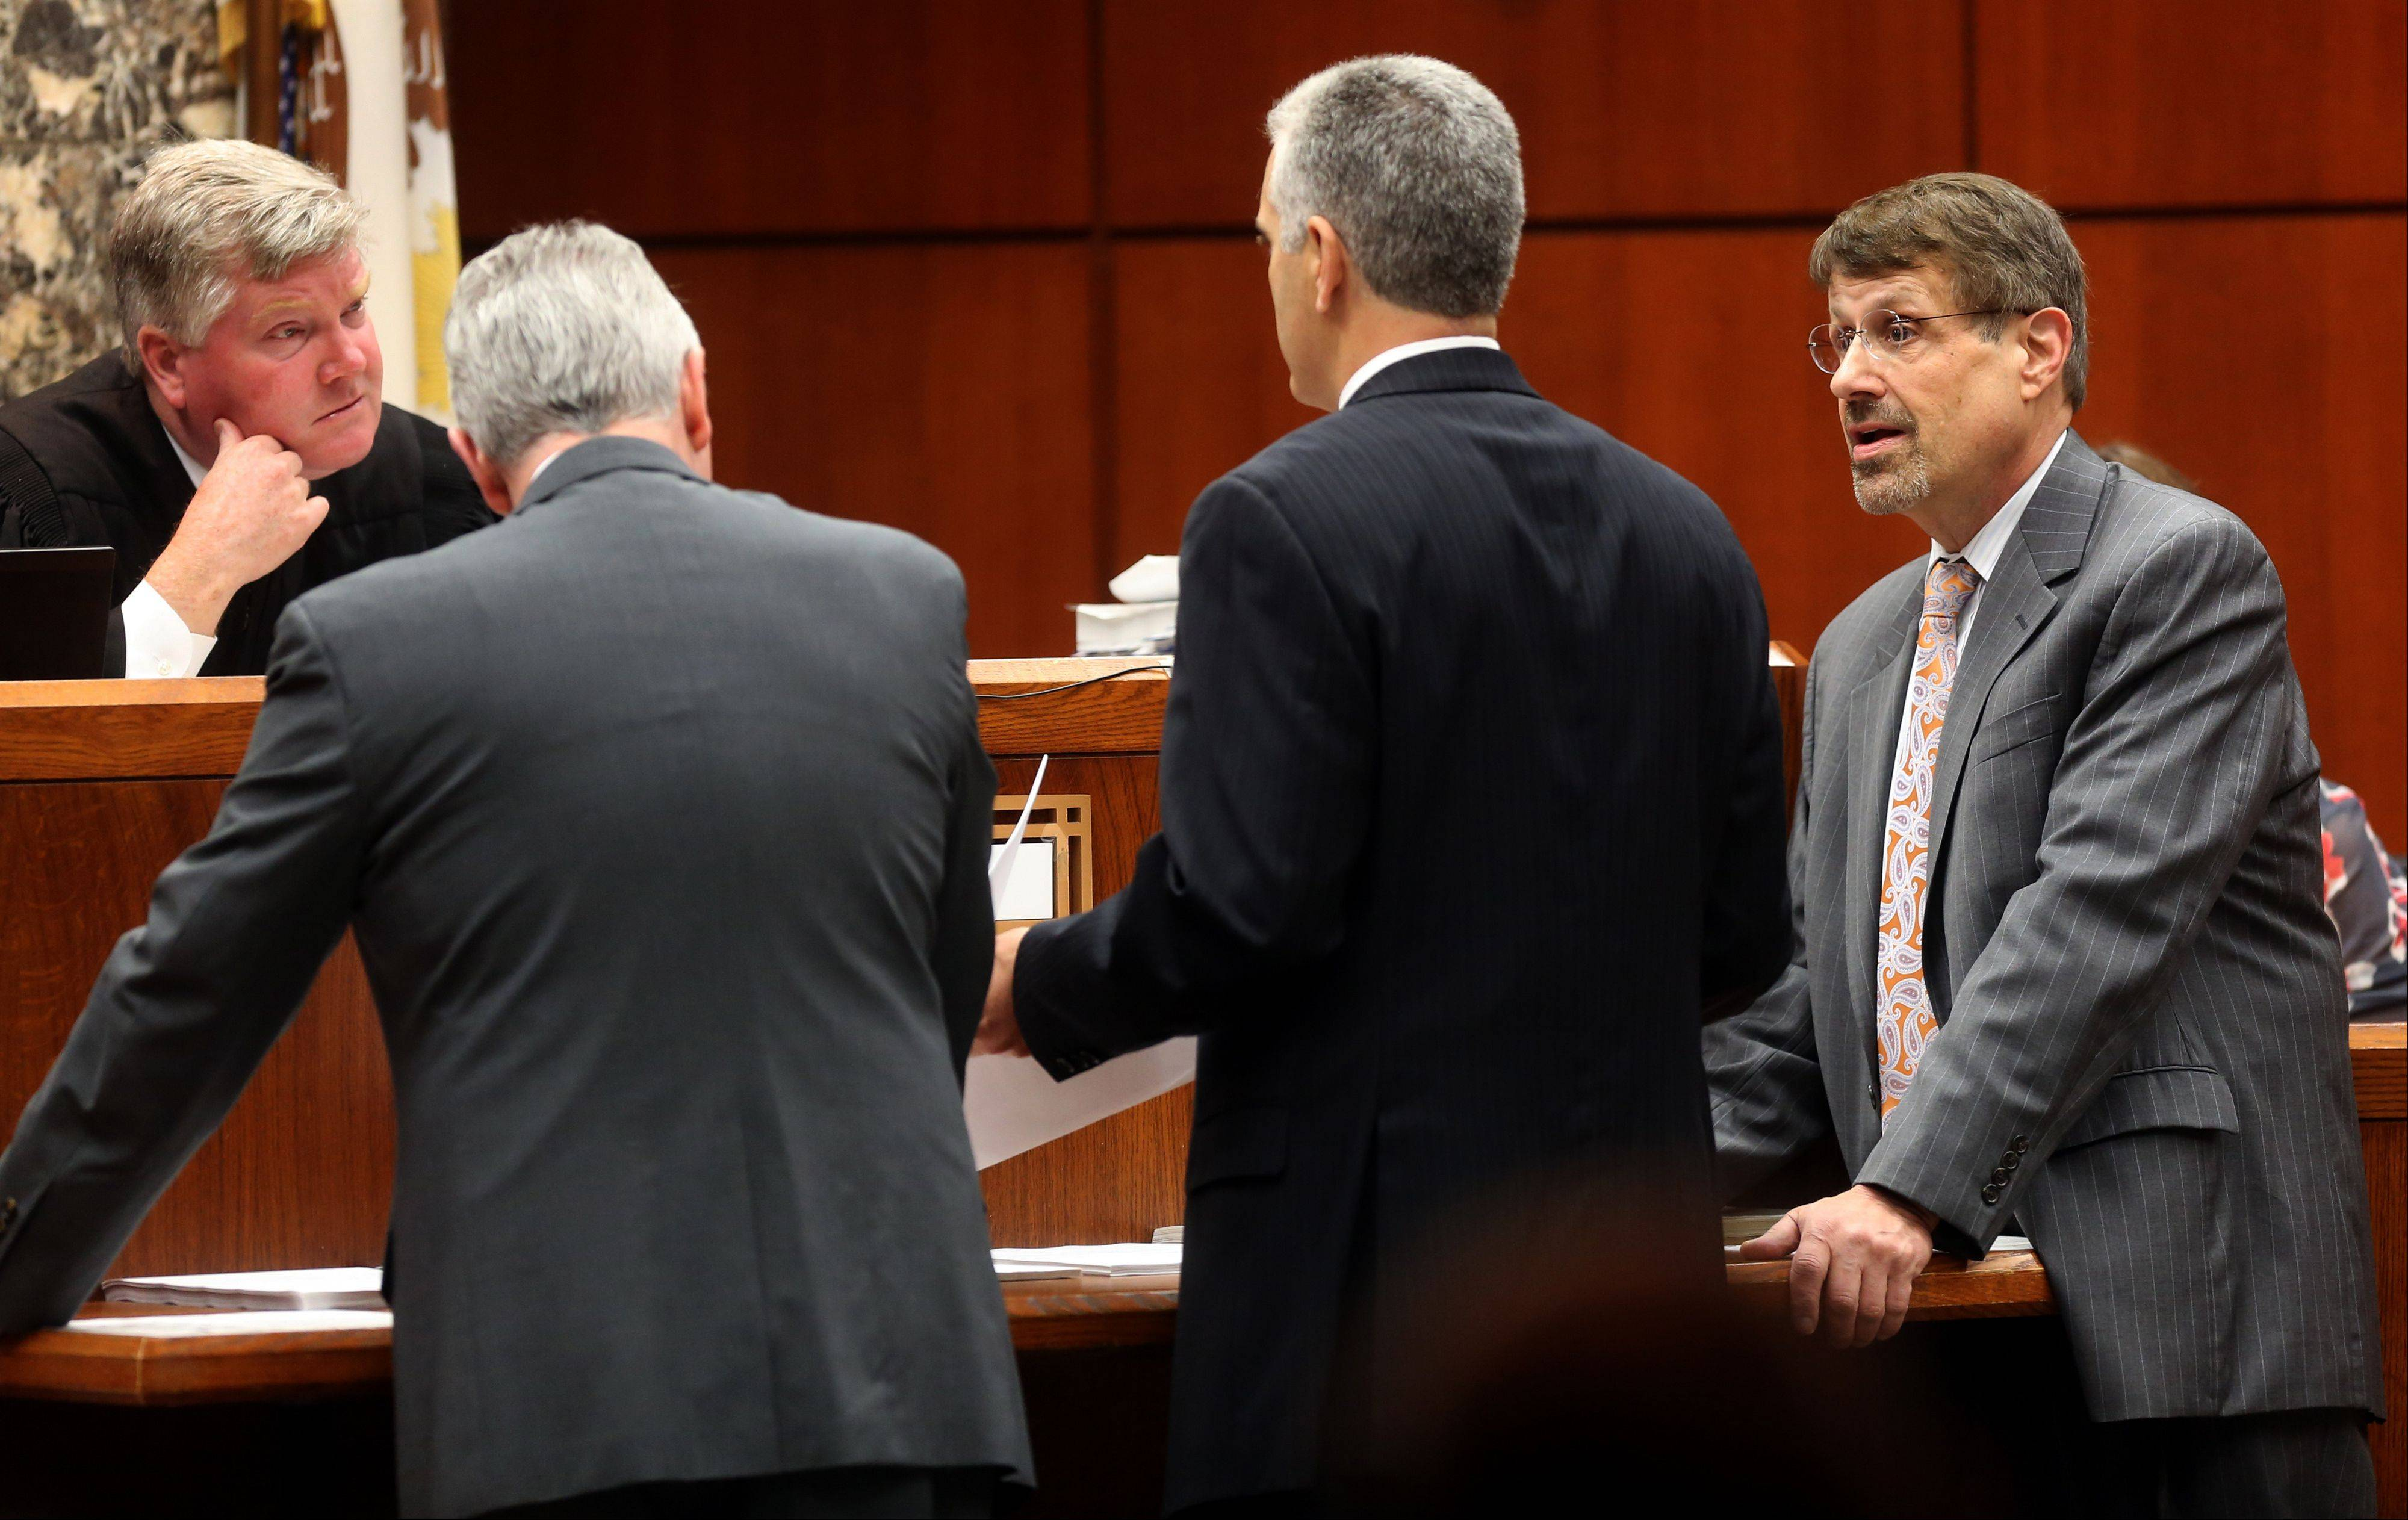 DuPage County Circuit Court Judge Daniel P. Guerin, left, speaks with DuPage County Assistant State's Attorney Joe Ruggiero, center, and defense attorney Richard Kling during the trial of Johnny Borizov, at the DuPage County Courthouse in Wheaton.